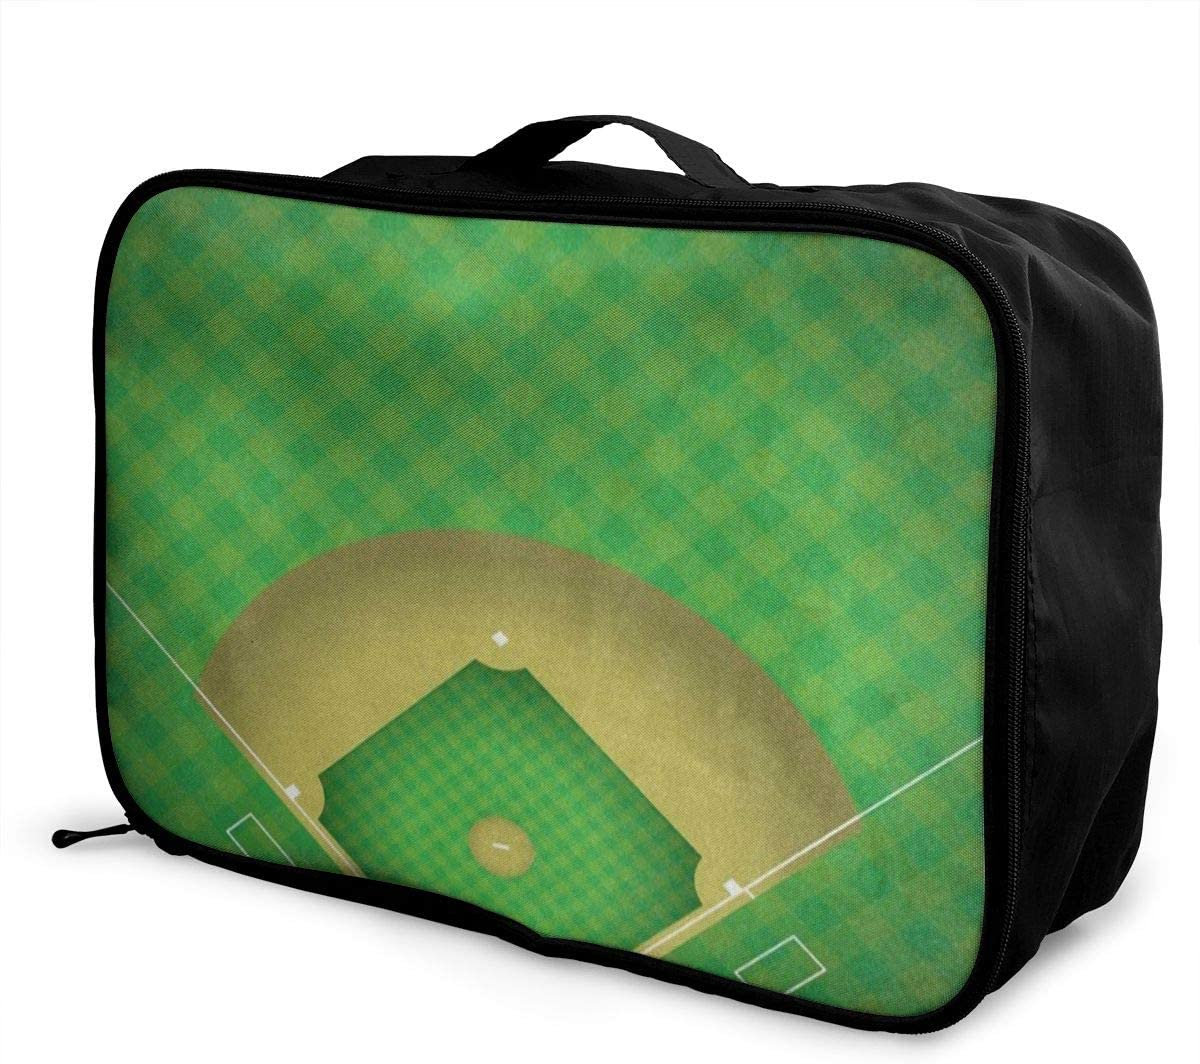 Travel Bags Green Baseball Ball Portable Suitcase Special Trolley Handle Luggage Bag